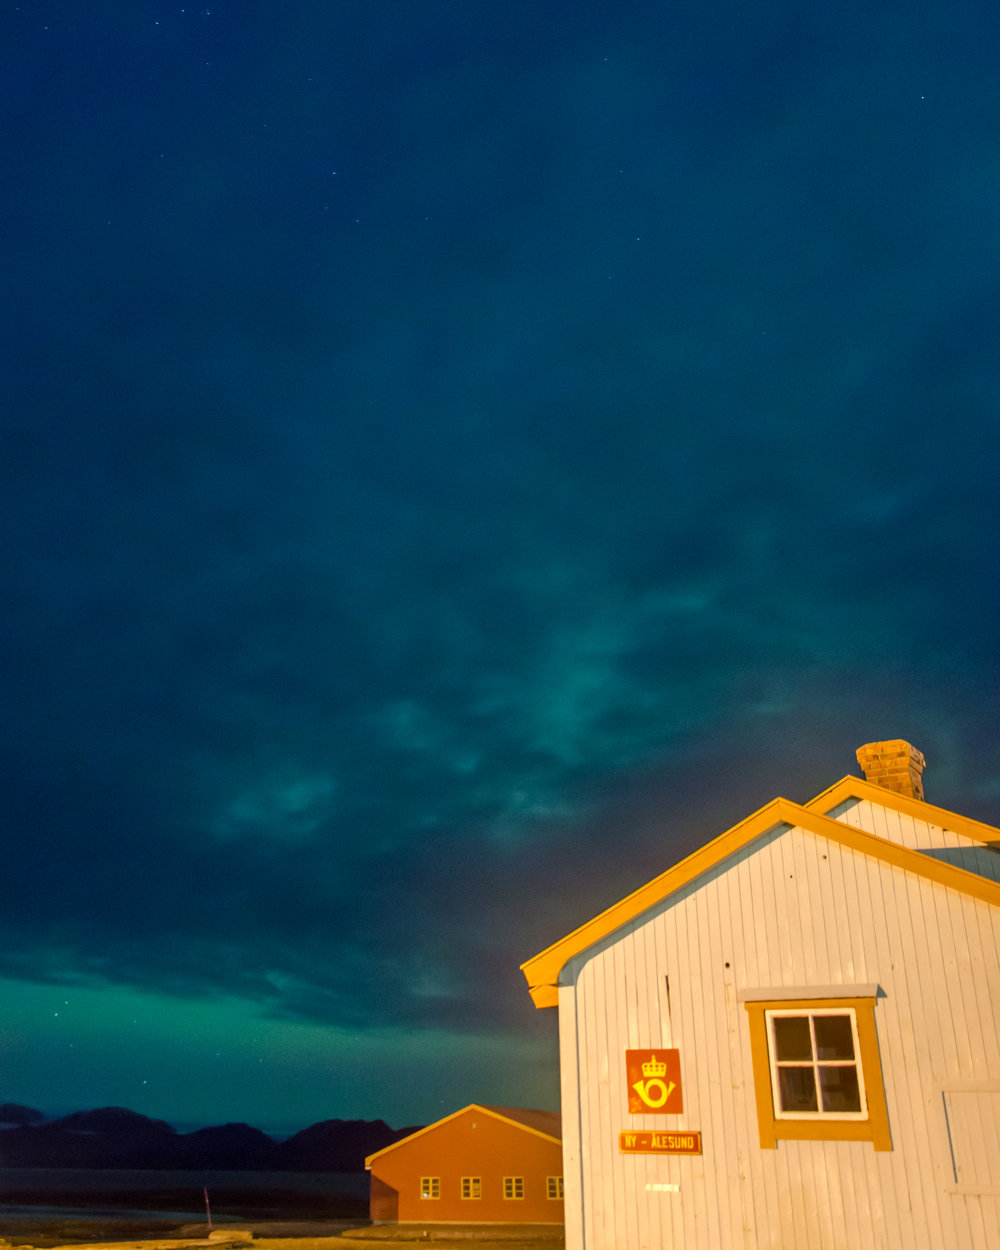 The post office in Ny-Ålesund, with aurora borealis in the background.